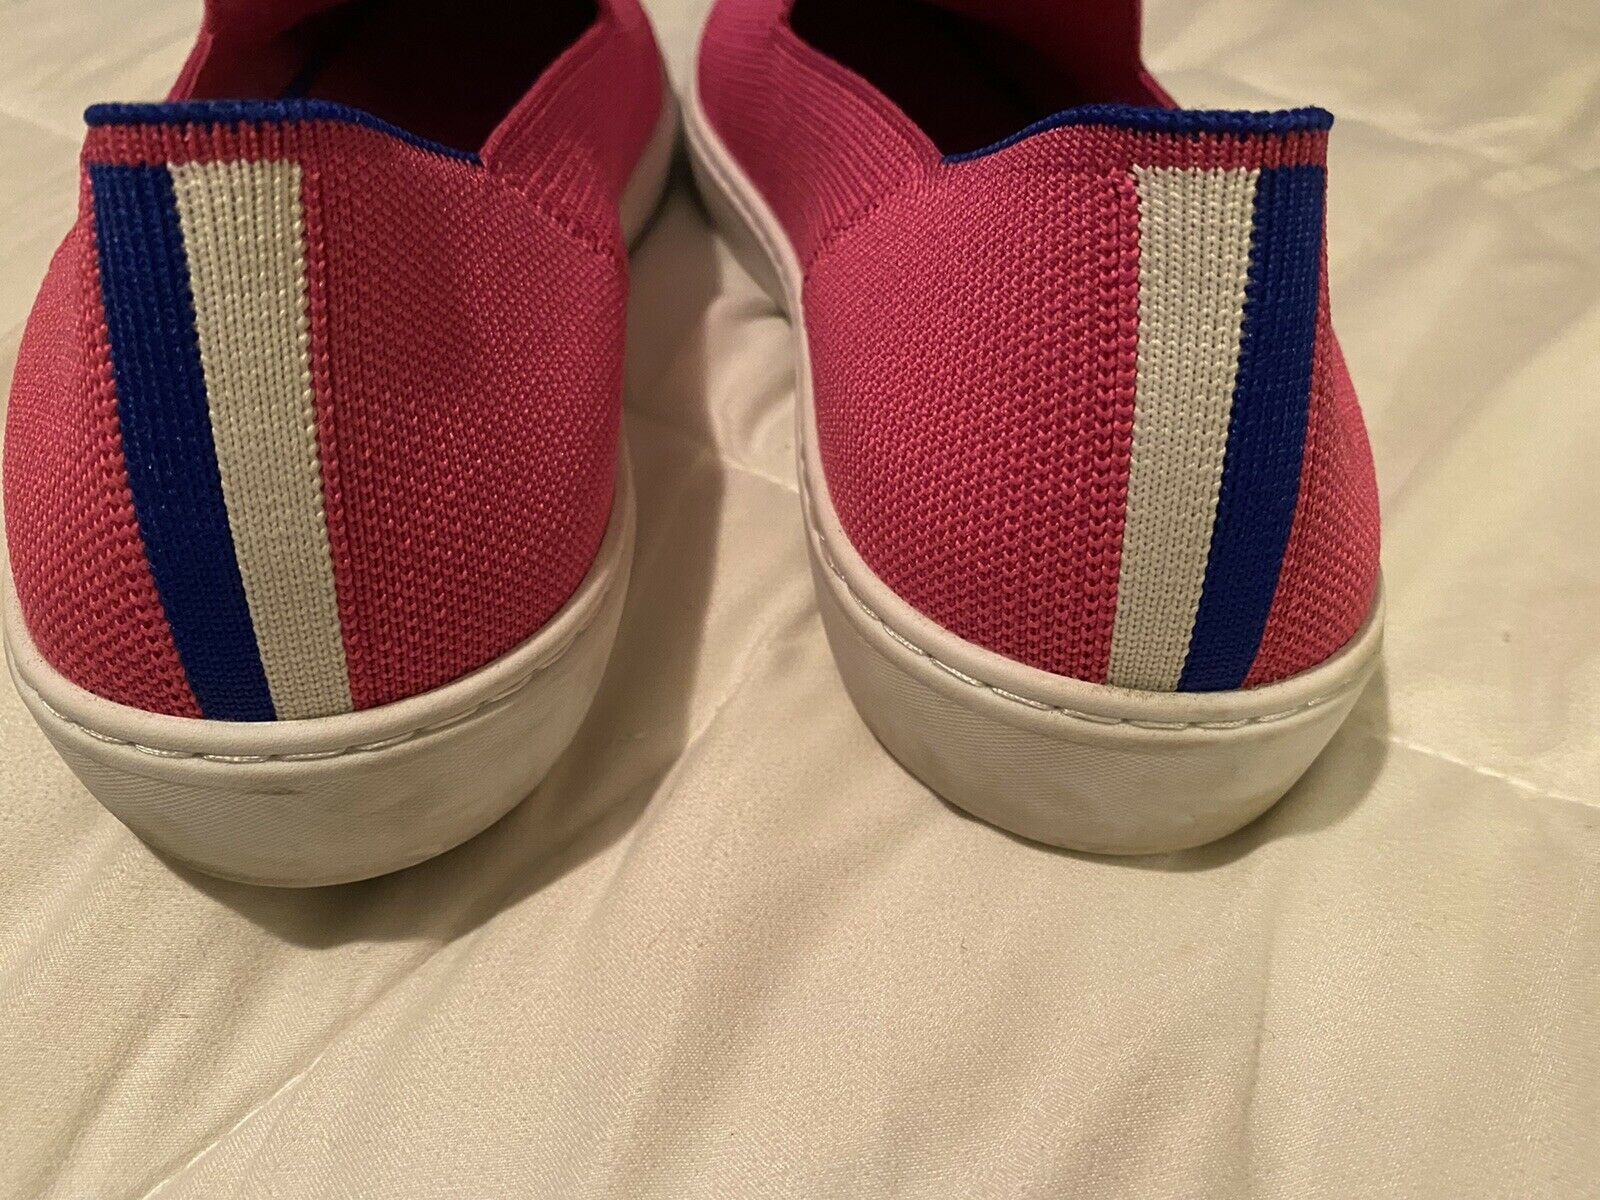 Rothys sneakers Bubblegum pink size 12.5 - image 5